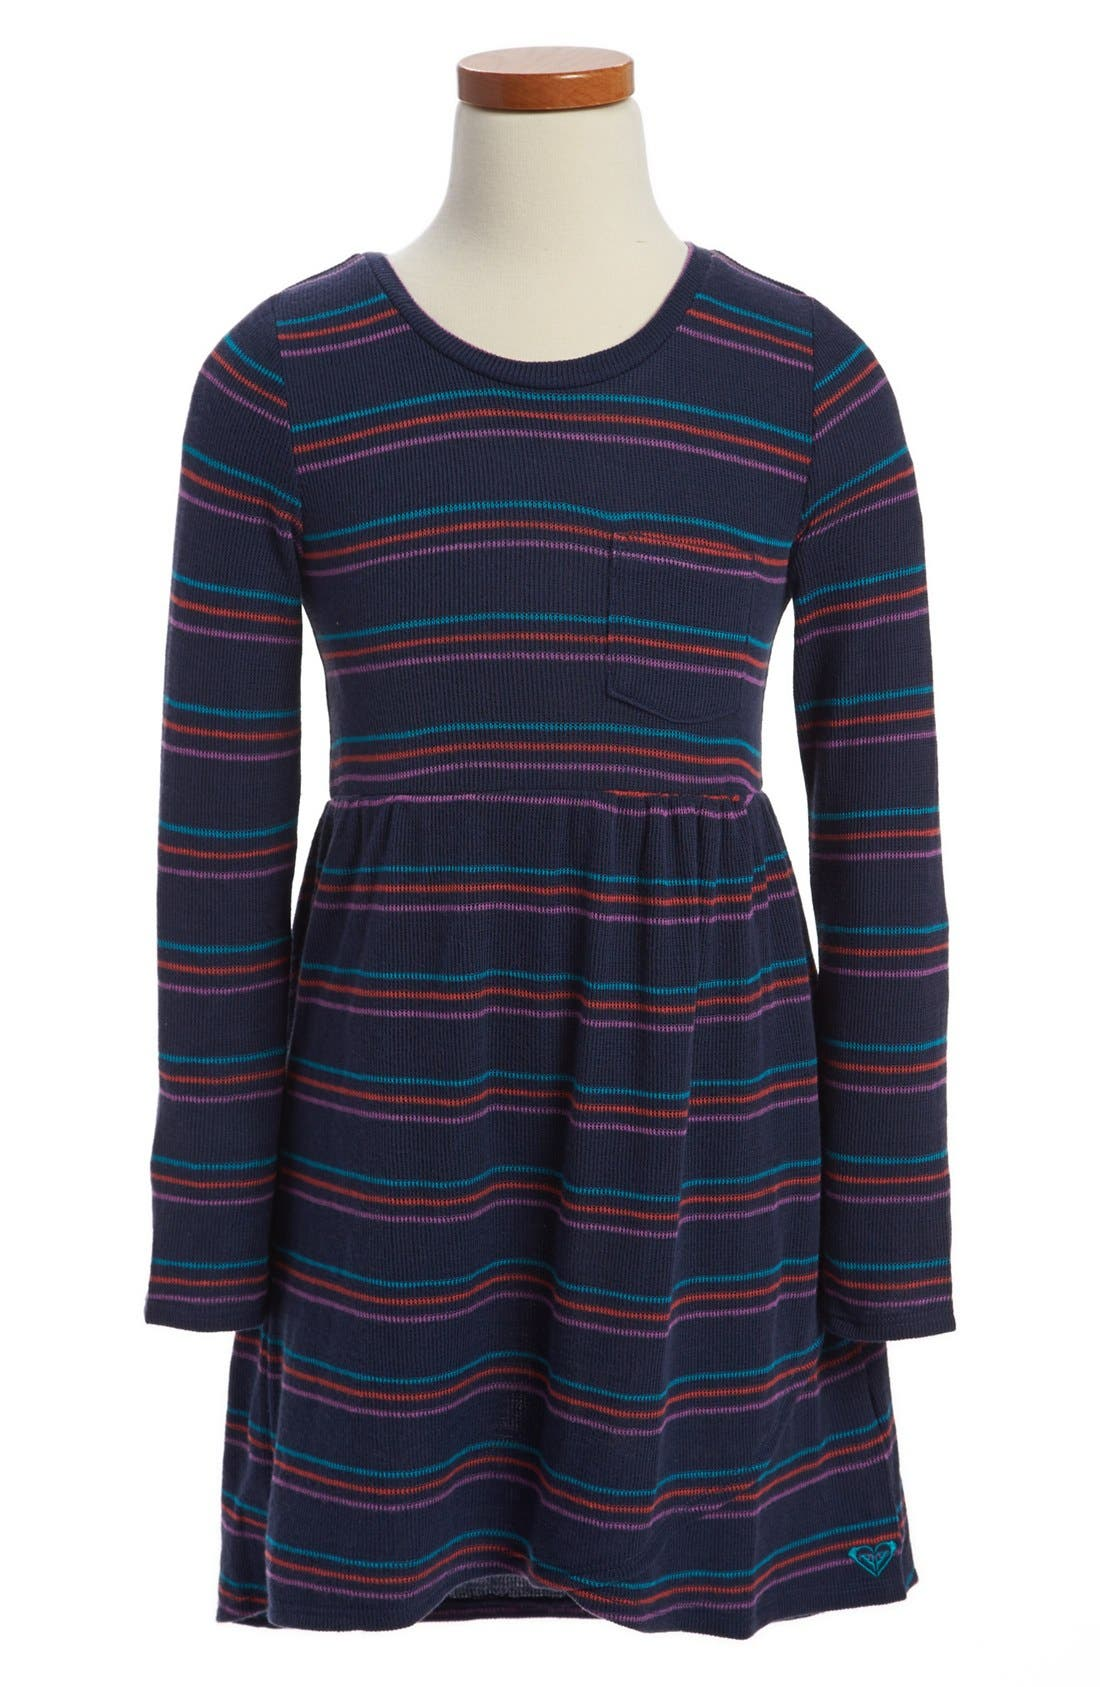 Alternate Image 1 Selected - Roxy 'Darling' Dress (Toddler Girls)